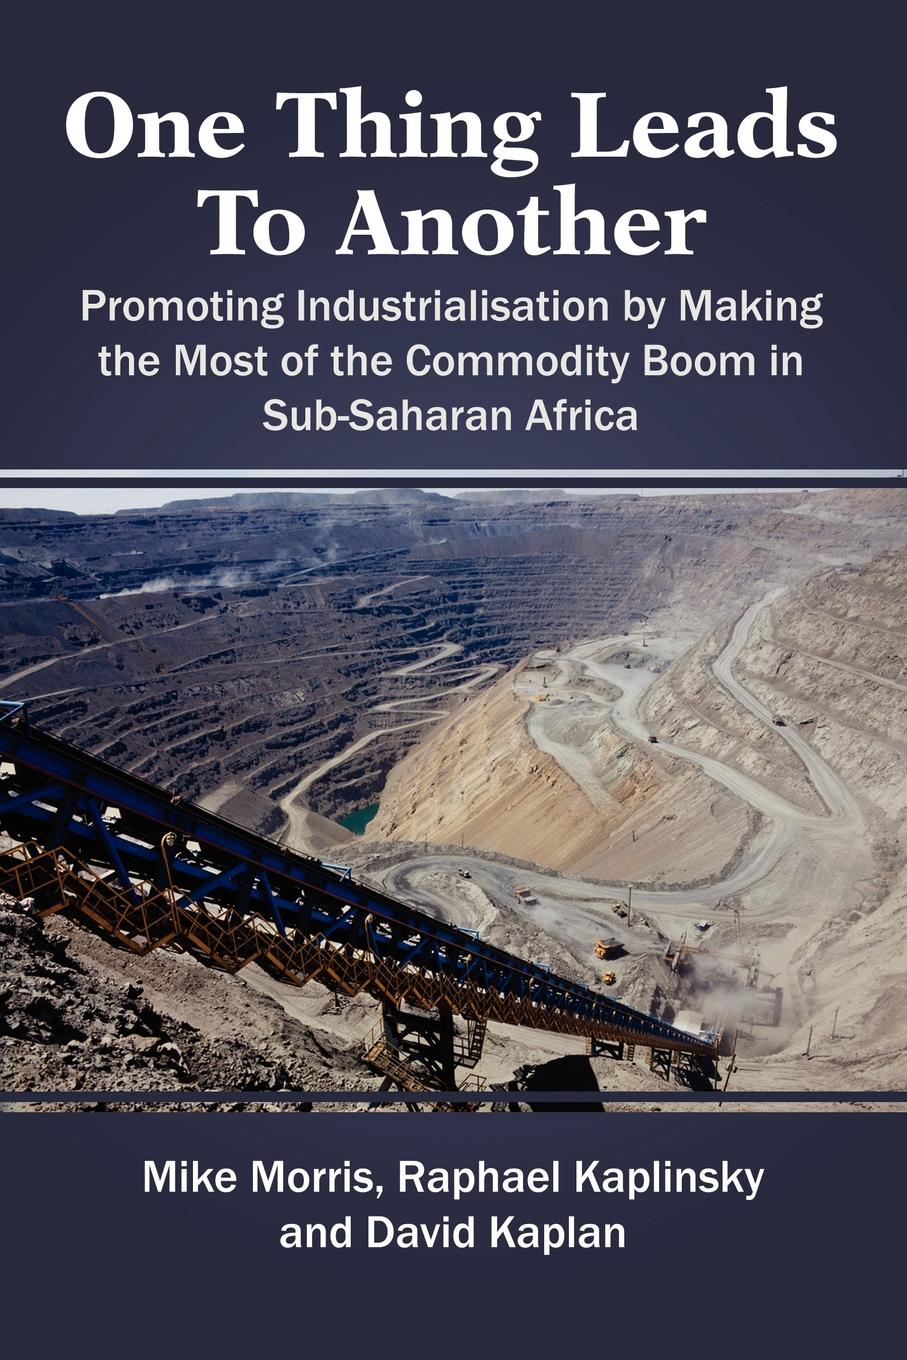 One Thing Leads to Another. Promoting Industrialisation by Making the Most of the Commodity Boom in Sub-Saharan Africa Over the past four decades, policy makers and stakeholders have...